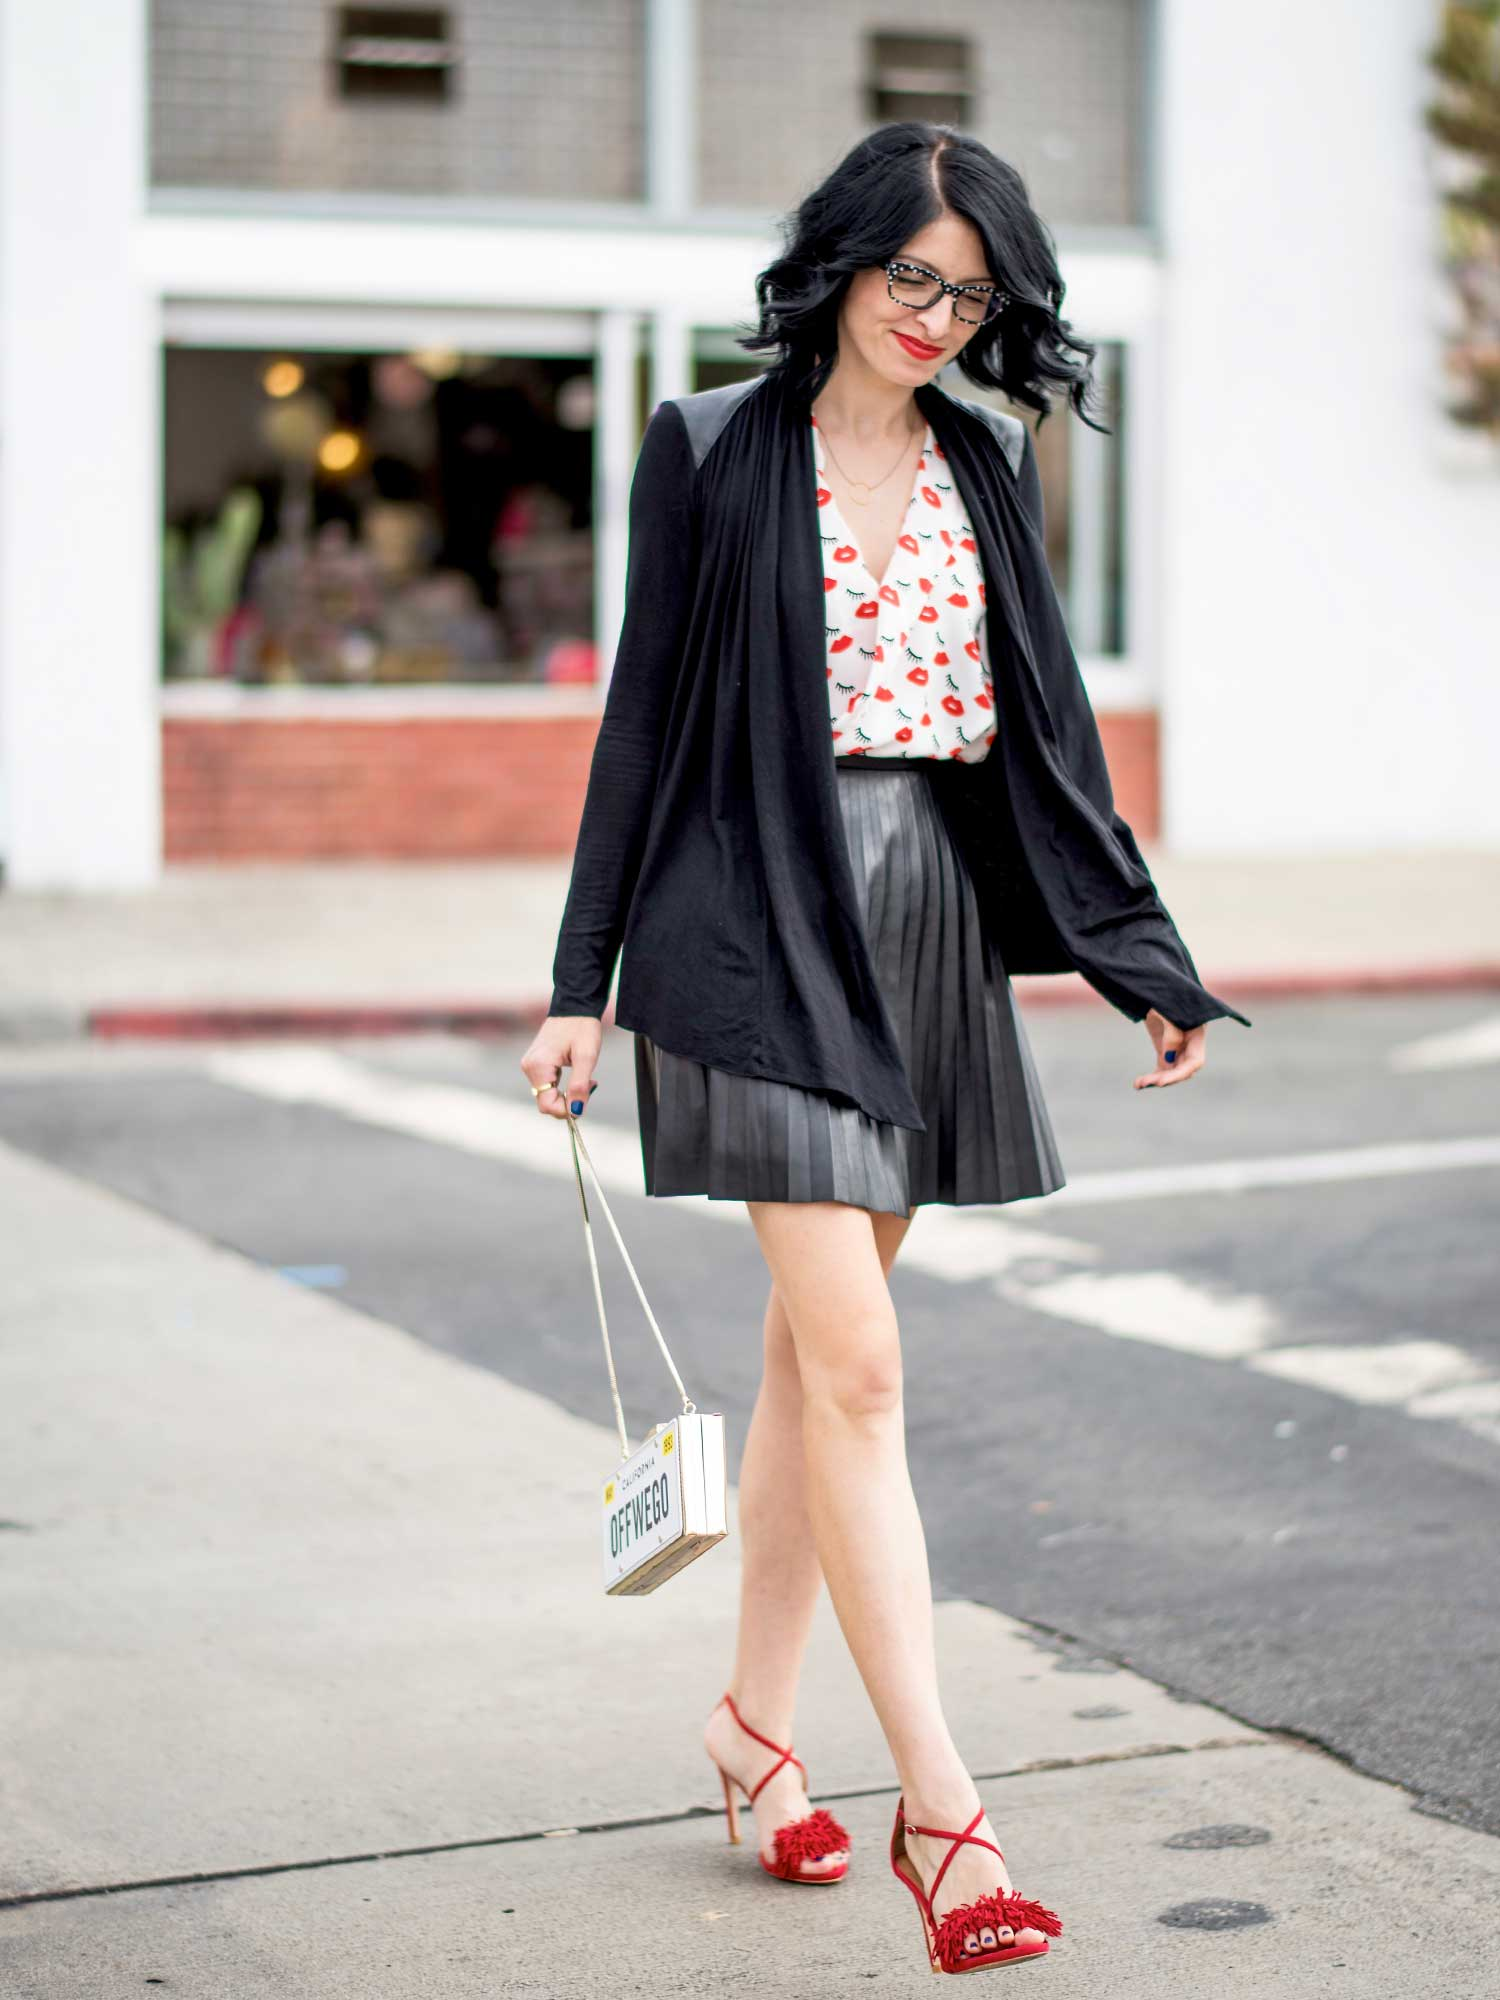 jenna-pilant-lucky-little-mustardseed-san-diego-style-blogger-san-diego-fashion-blogger-how-to-transition-from-summer-to-fall-clothing-5